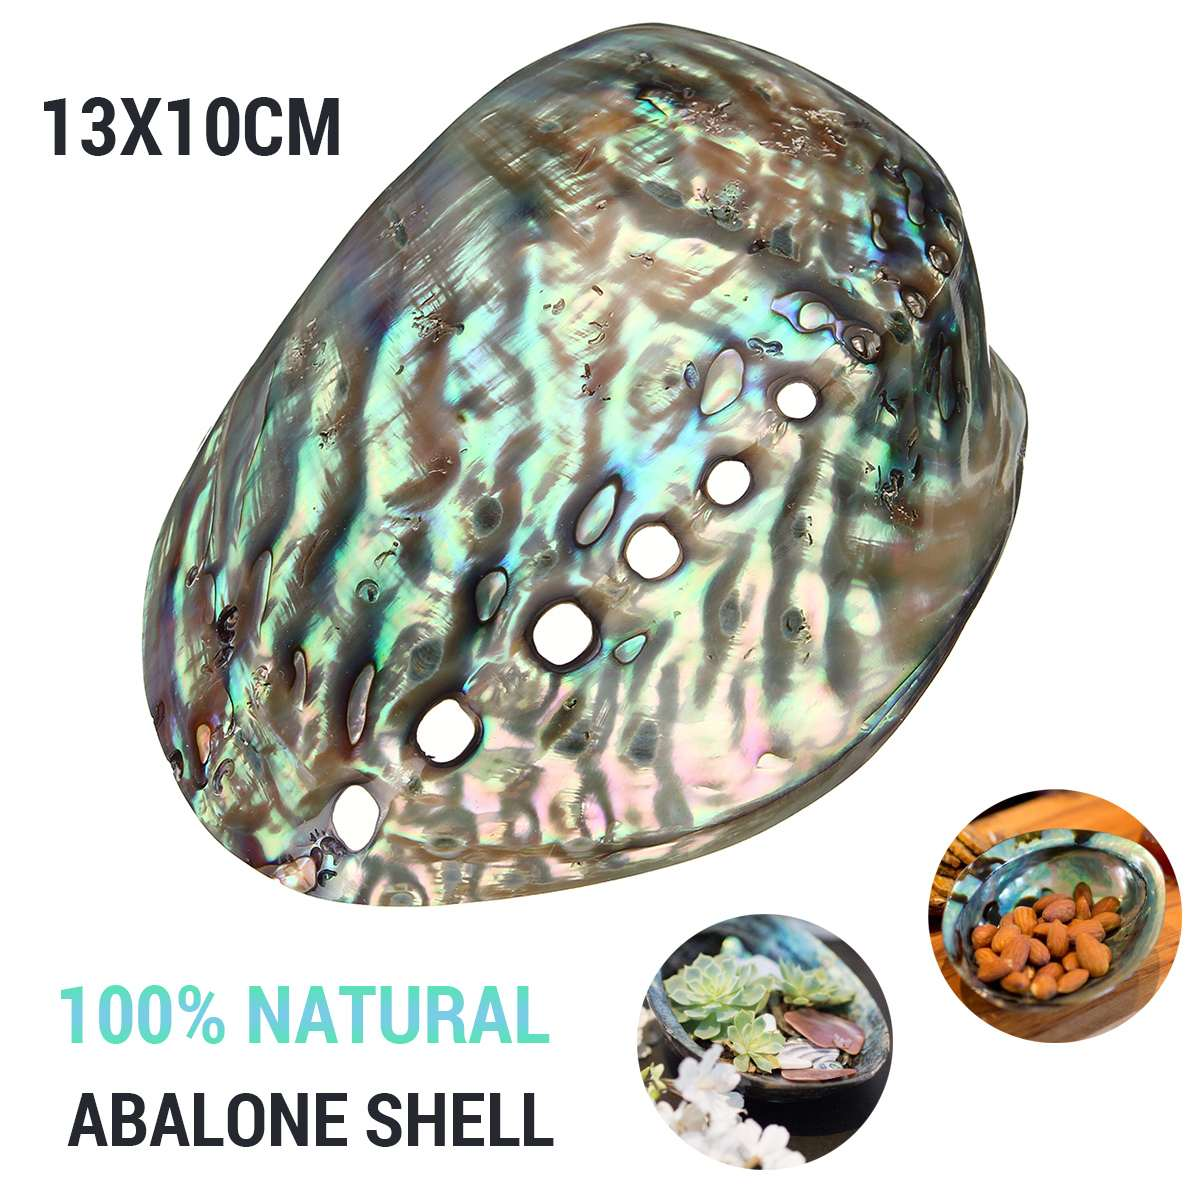 Abalone Shell Natural Shell Craft Jewelry Conch Home Wedding Decoration Charm Pendants For Jewelry Making DIY Necklace Bracelet